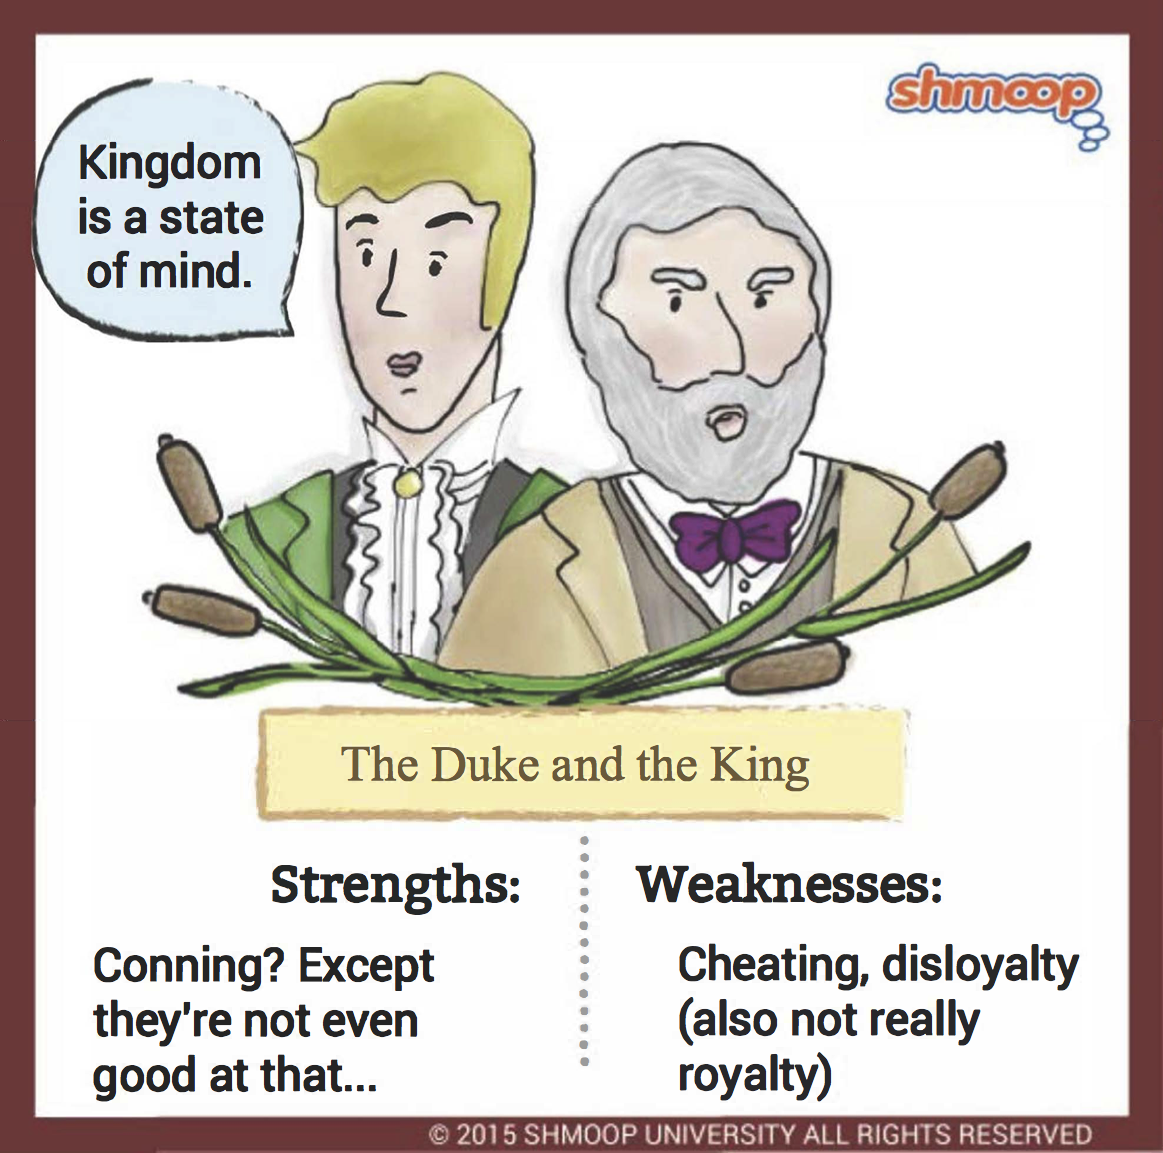 the duke and the king in adventures of huckleberry finn chart the duke and the king